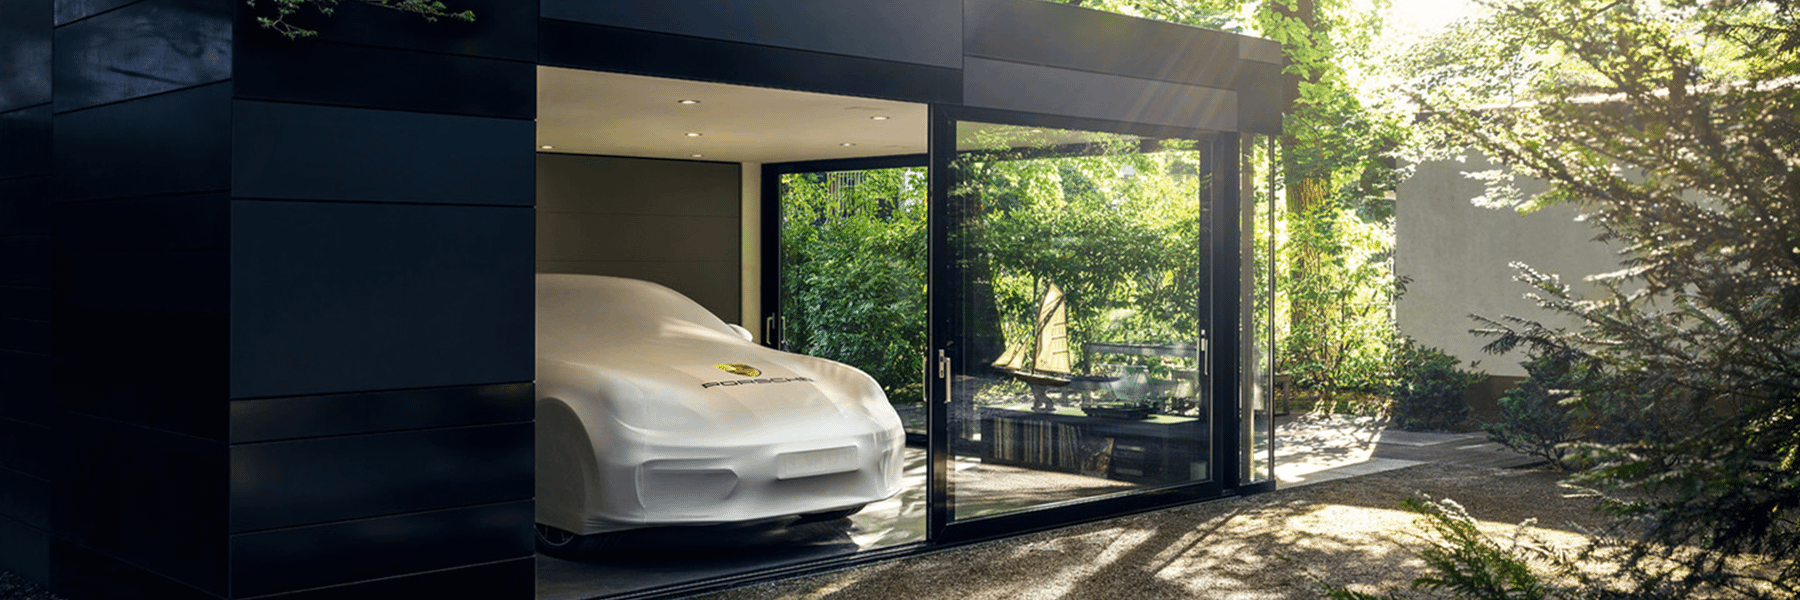 Caring for your Porsche at Home